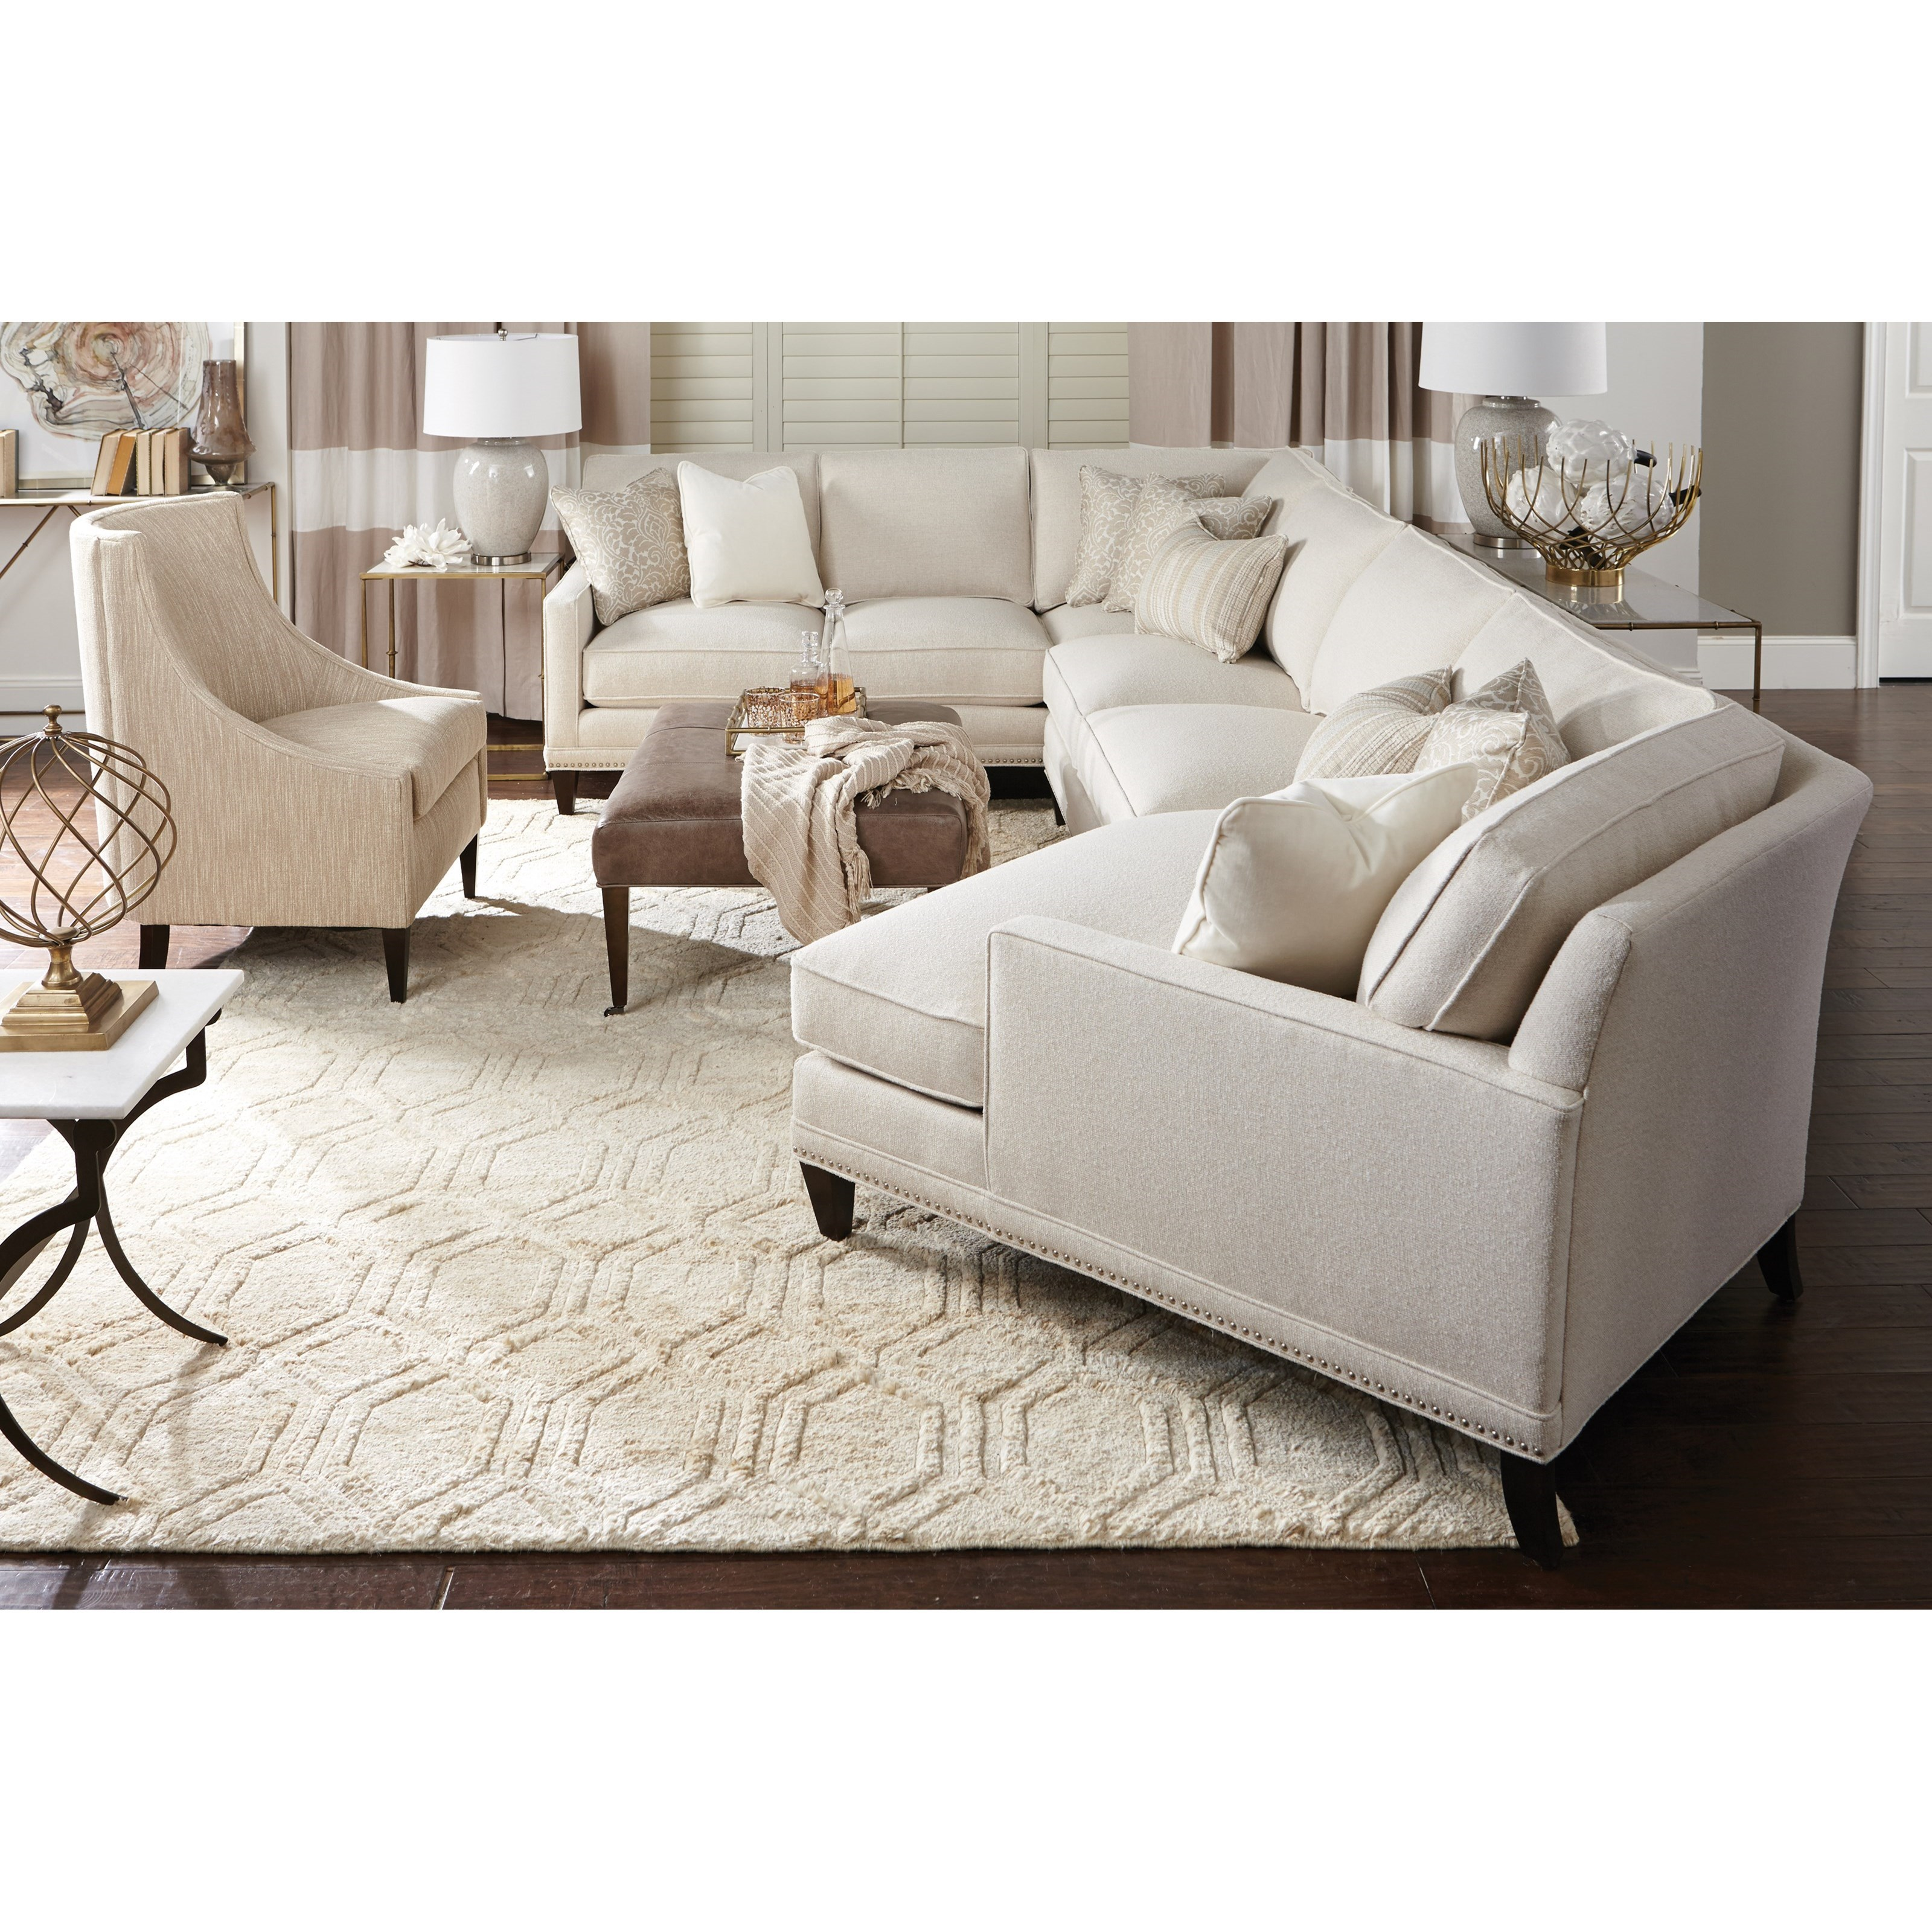 My Style II Customizable Sectional by Rowe at Baer's Furniture